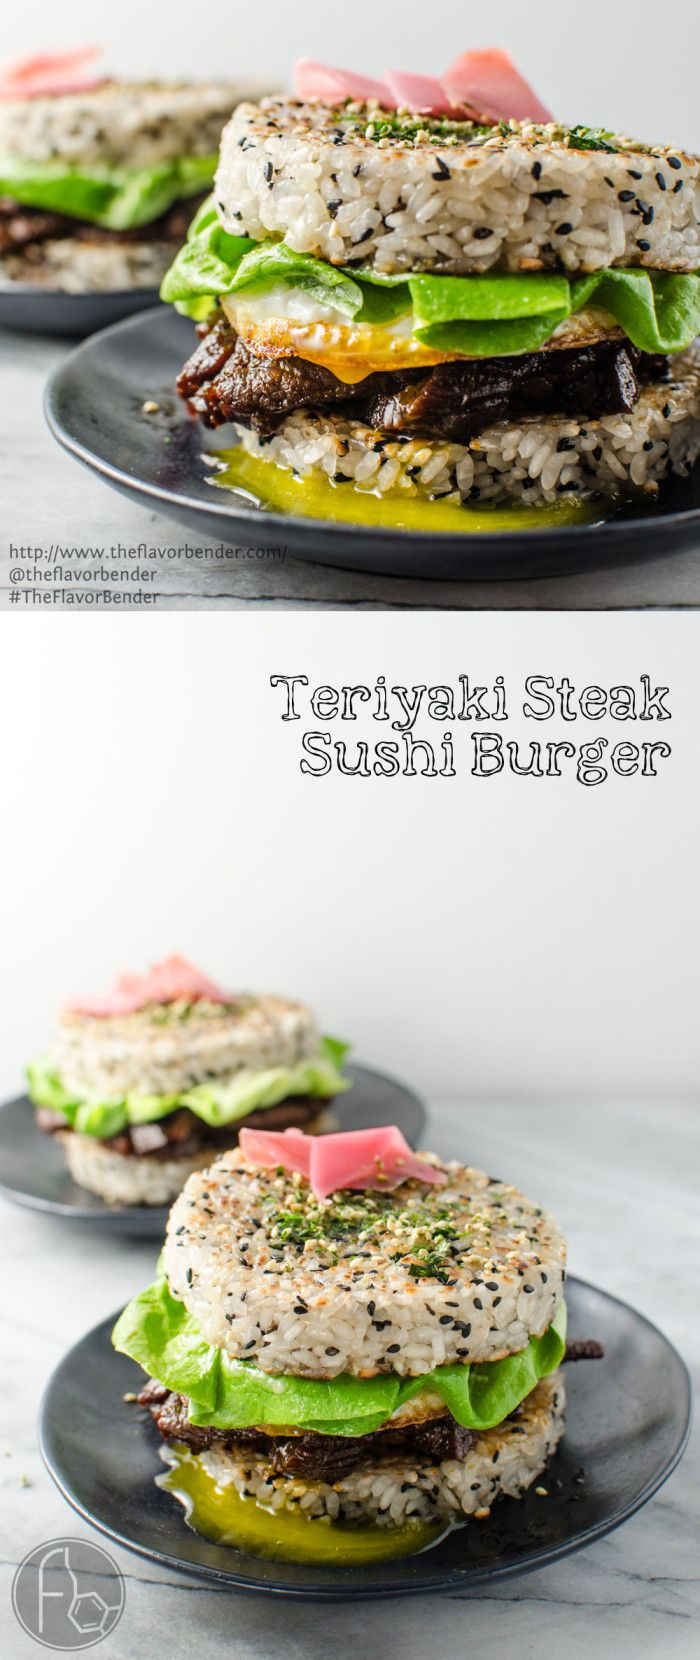 "Teriyaki Steak Sushi Burger - Delicious Teriyaki Glazed steak strips inside perfectly seasoned Sushi Rice ""Buns"" and topped with a glorious Egg. **Be sure to use gluten free tamari in place of soy sauce**"